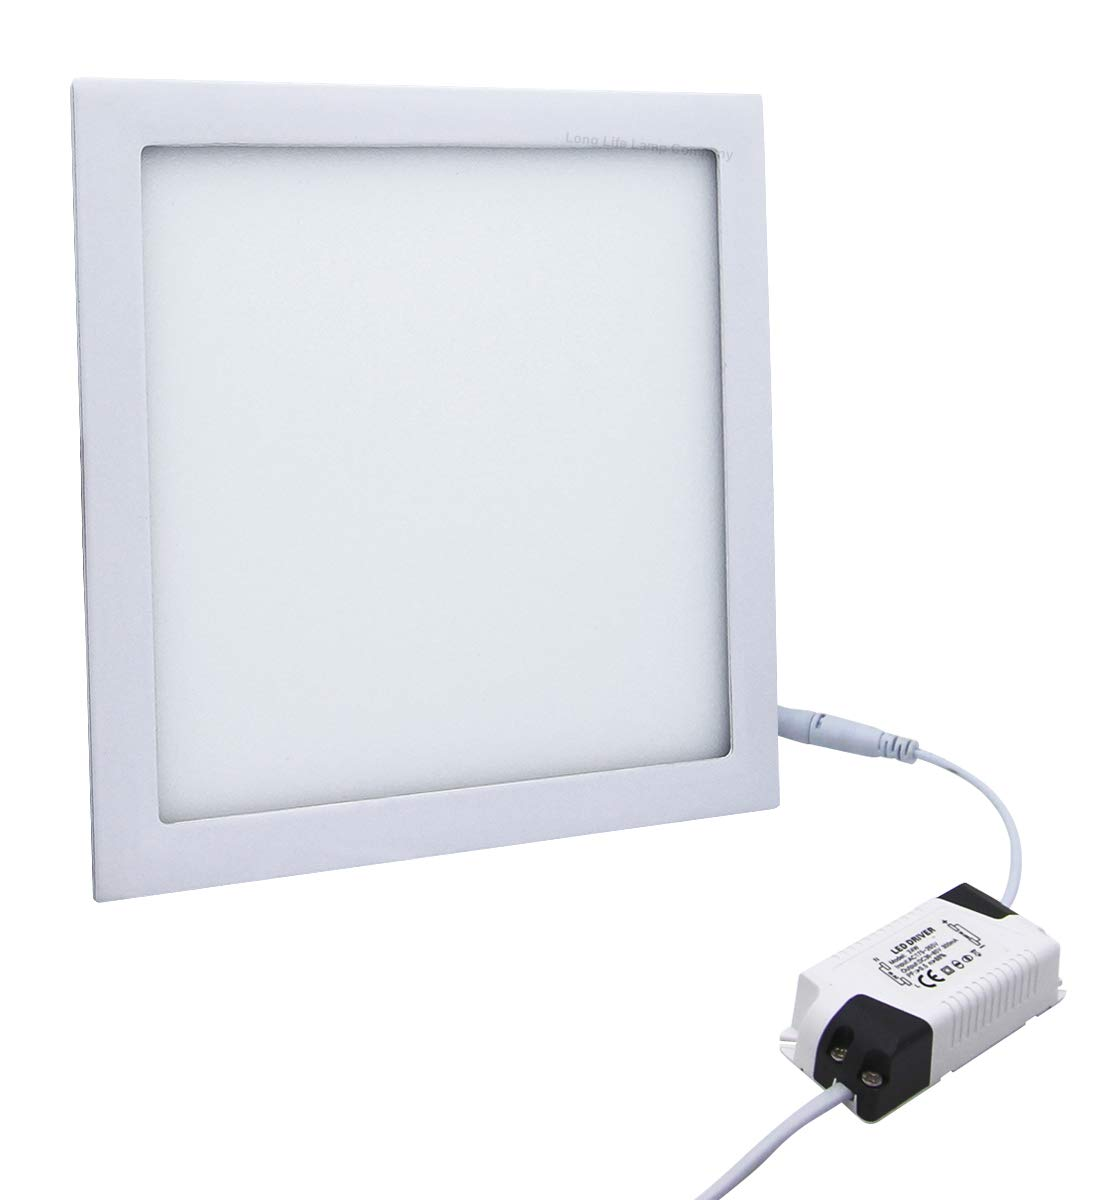 24w LED Square Recessed Ceiling Flat Panel Down Light Ultra Slim Lamp Cool White 7000K Super Bright 300mm x 300mm [Energy Class A+] Long Life Lamp Company